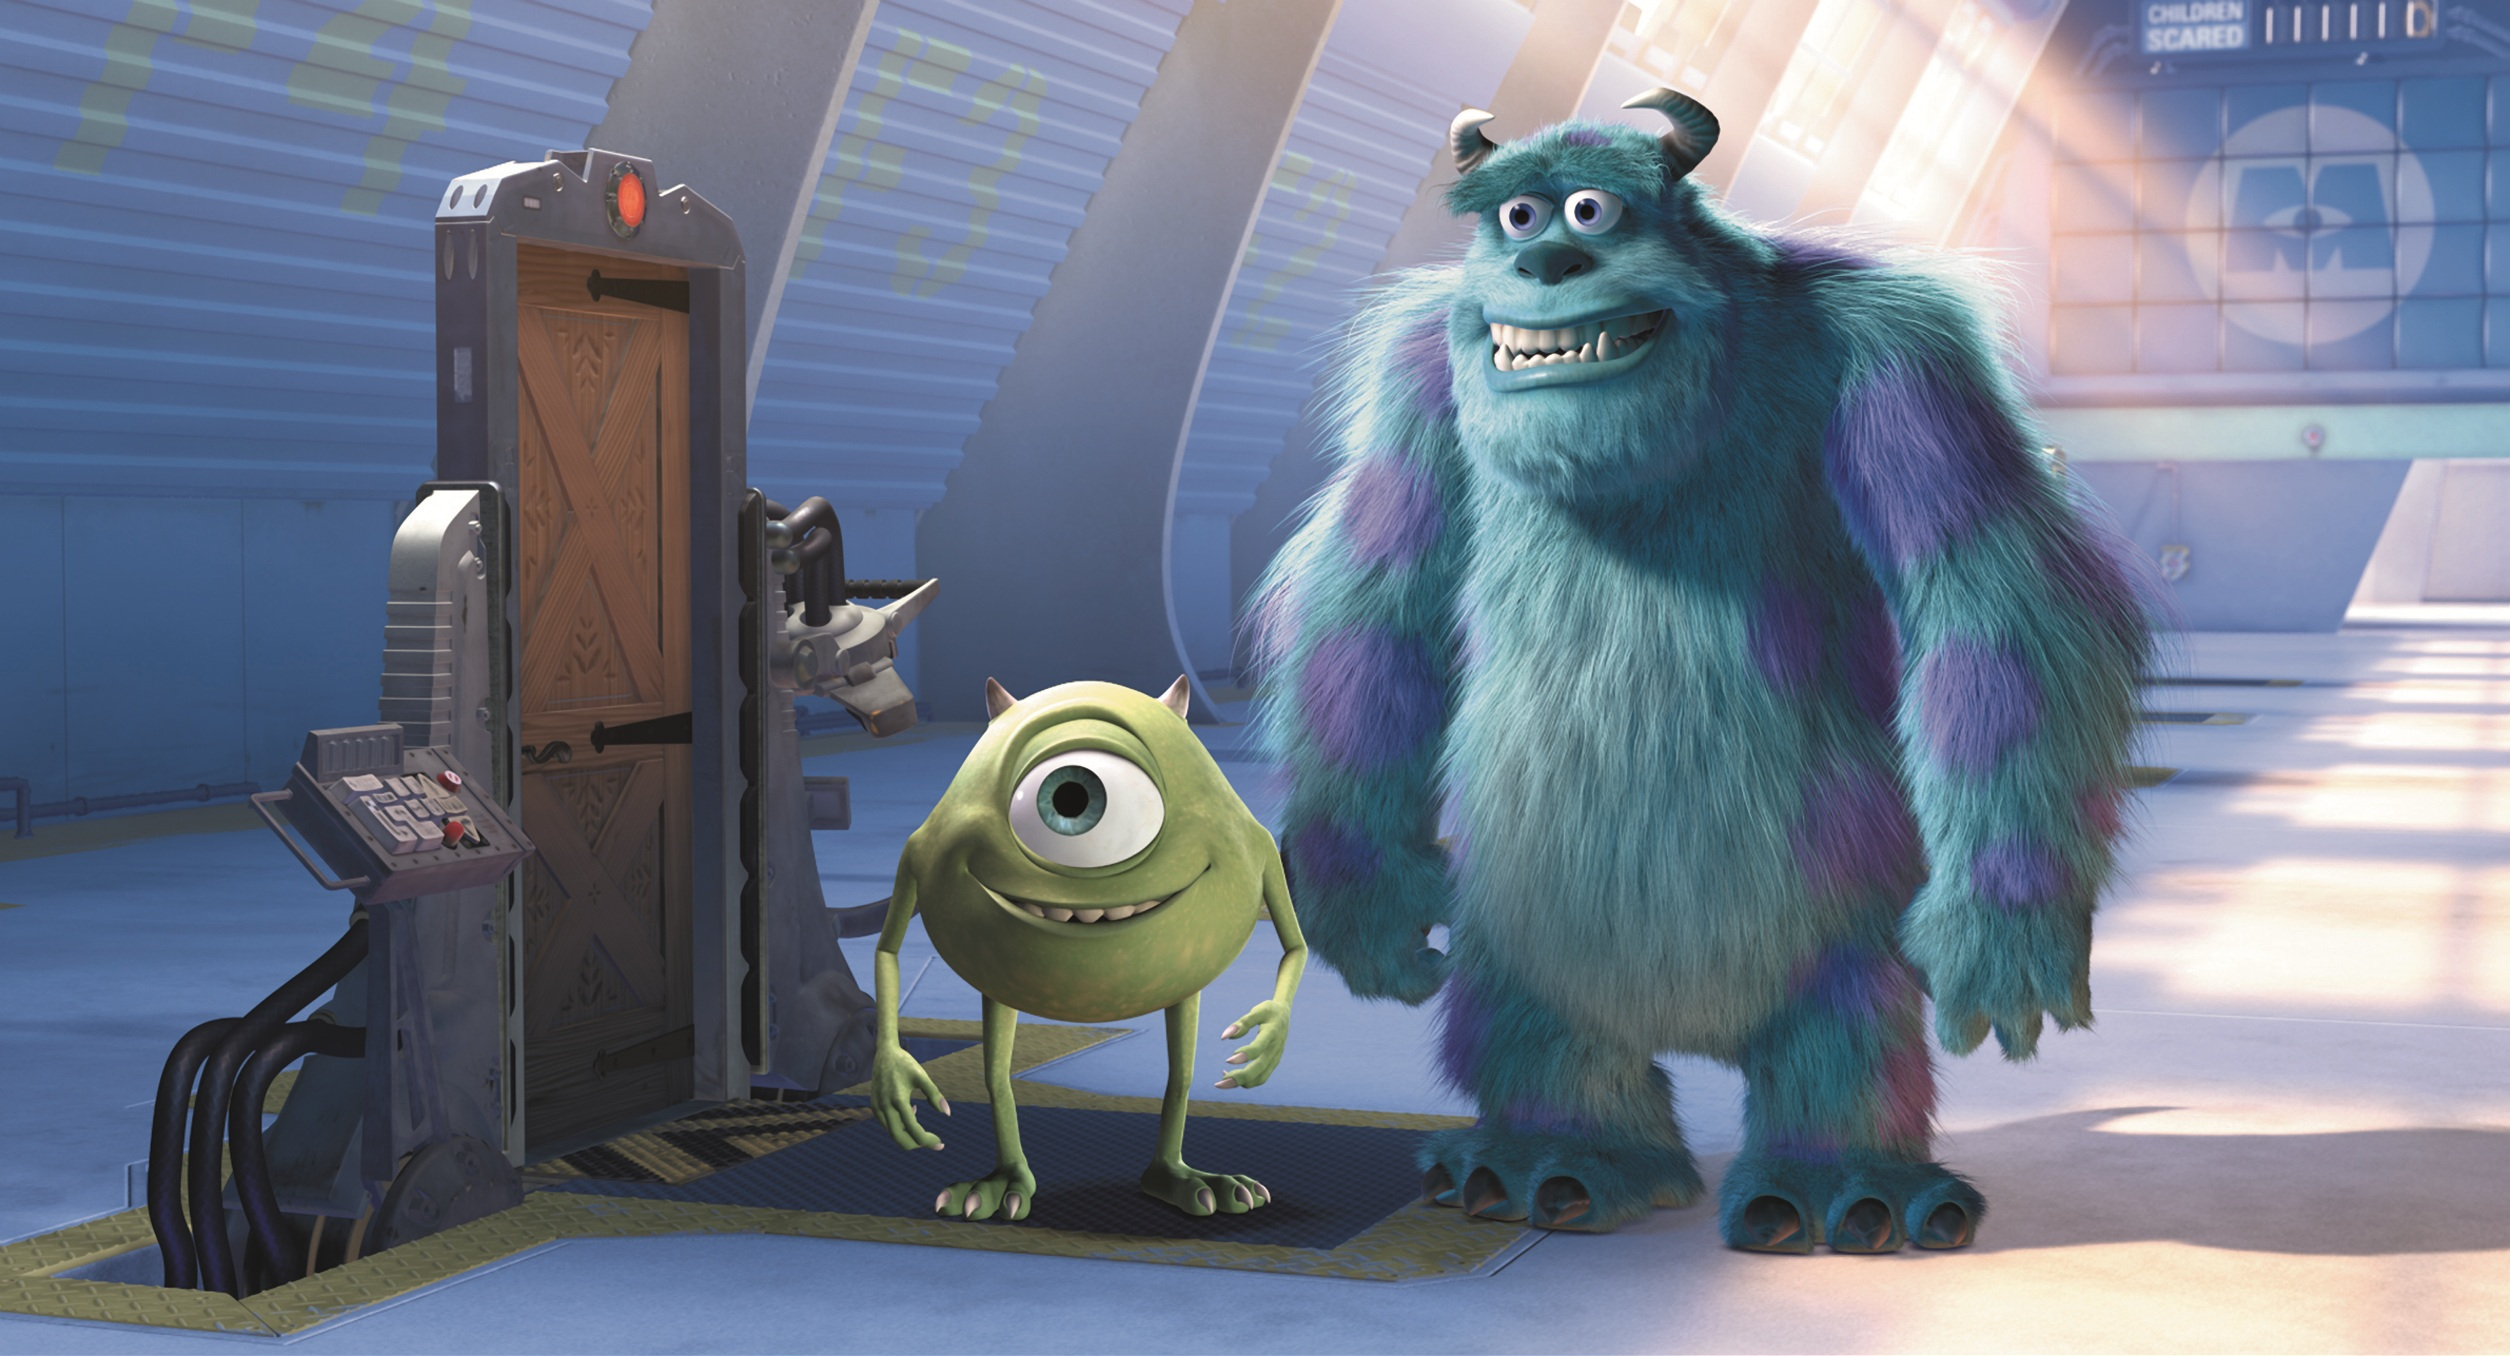 monsters-inc_9275eb2d